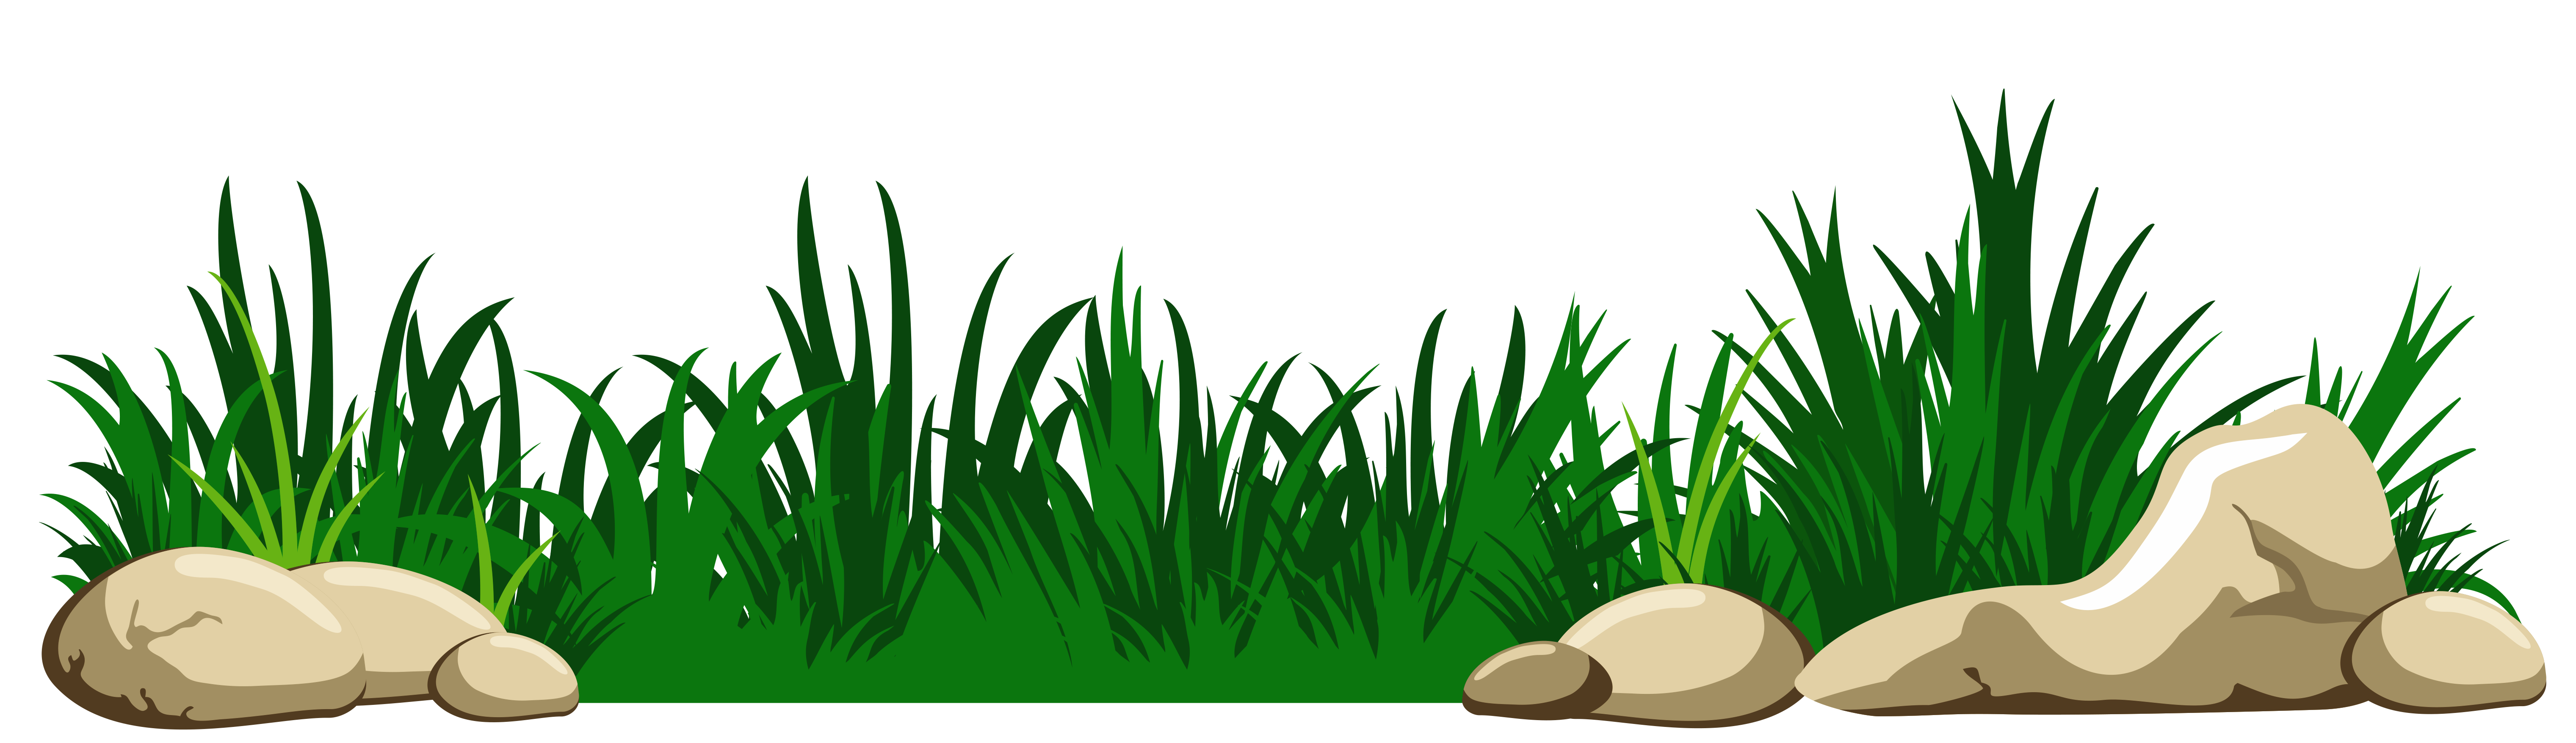 Grass with Rocks Transparent PNG Clipart Grass clipart